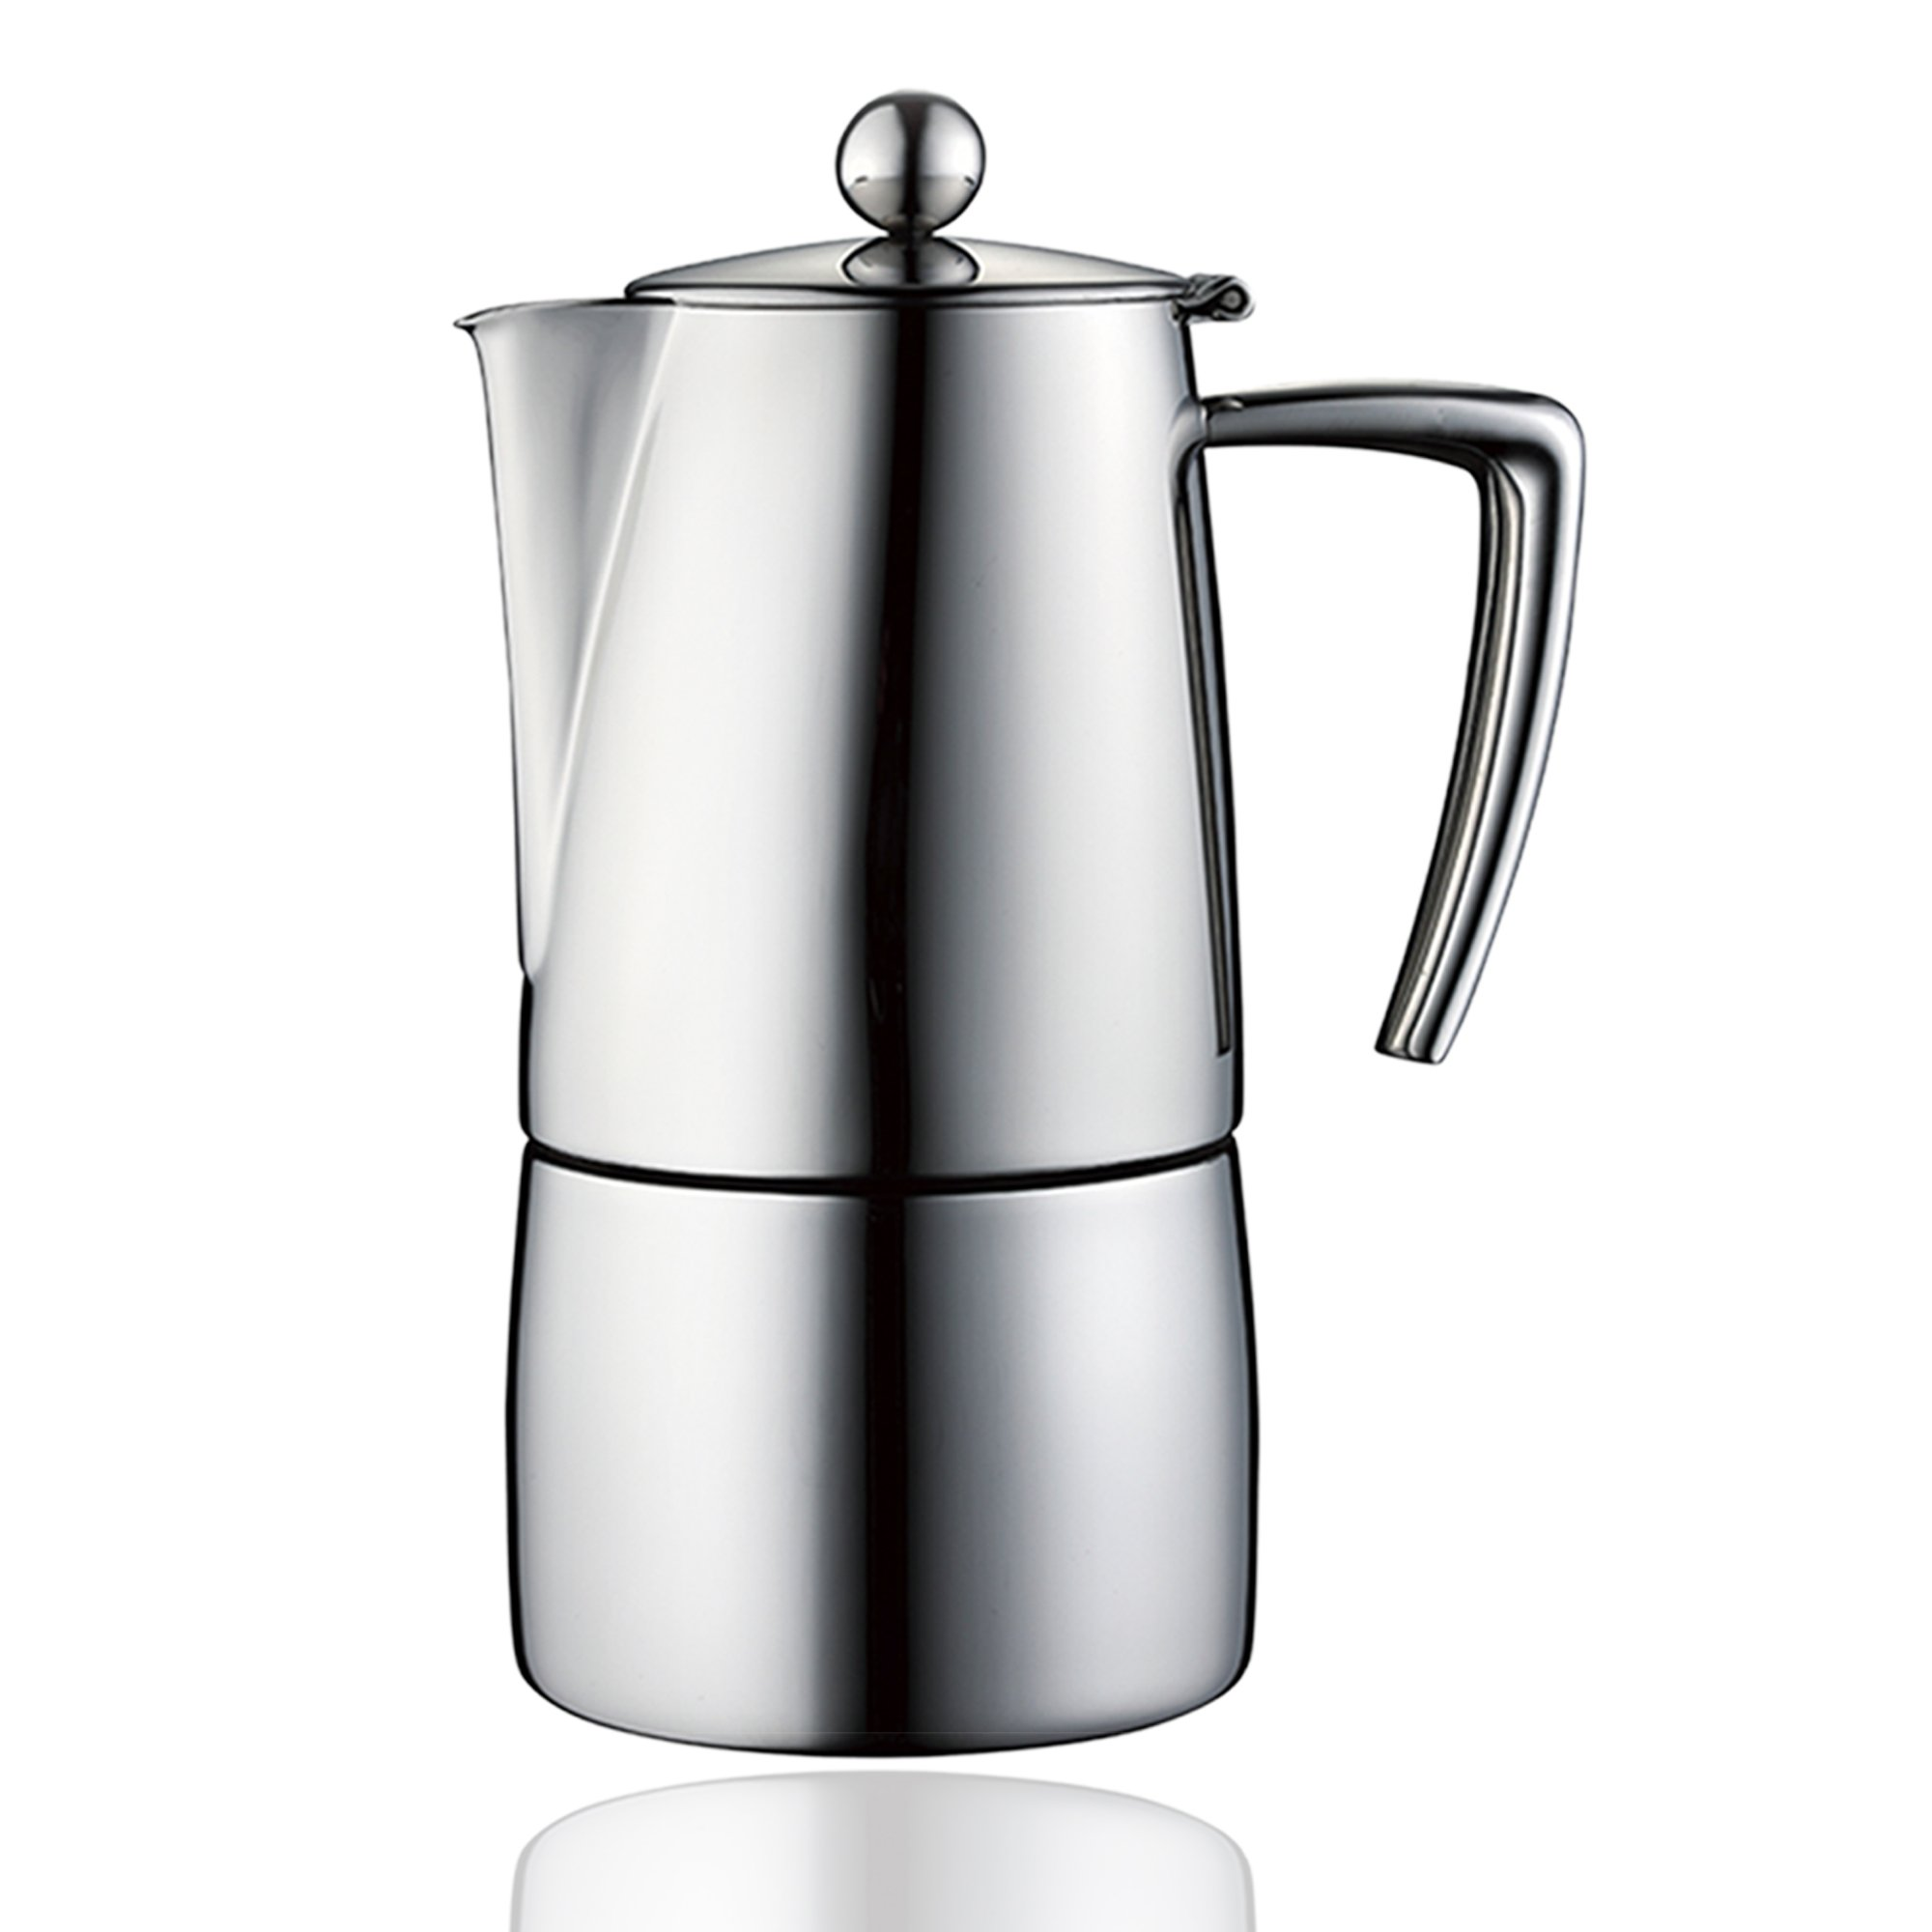 Minos Moka Pot Espresso Maker: Makes 4 Espresso Shots Suitable for Ceramic, Gas and Electric Stovetop - Stainless Steel With Flat Bottom and Heatproof Handle, Wear and Scratch-Resistant